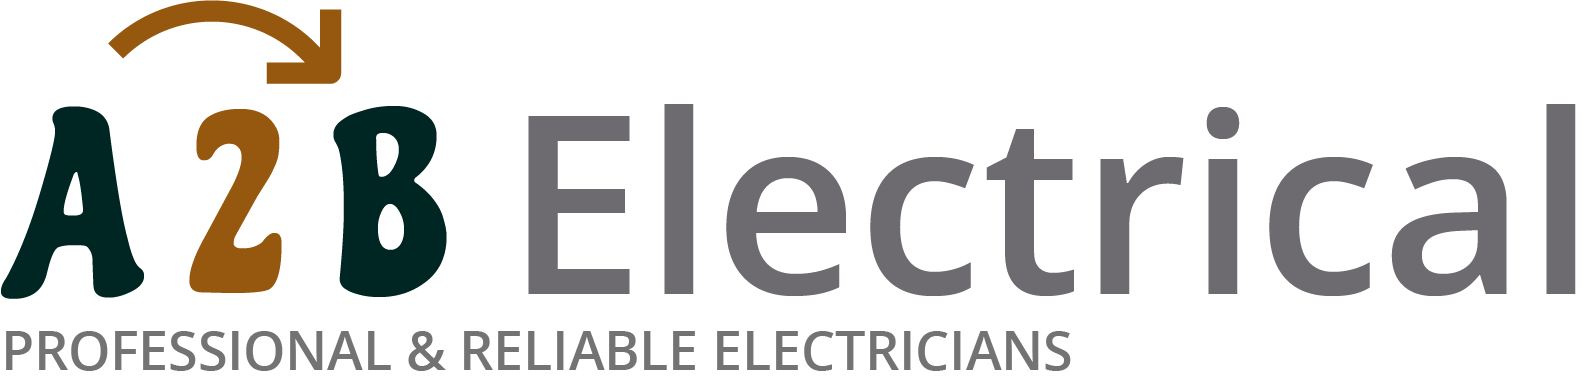 If you have electrical wiring problems in Hendon, we can provide an electrician to have a look for you.